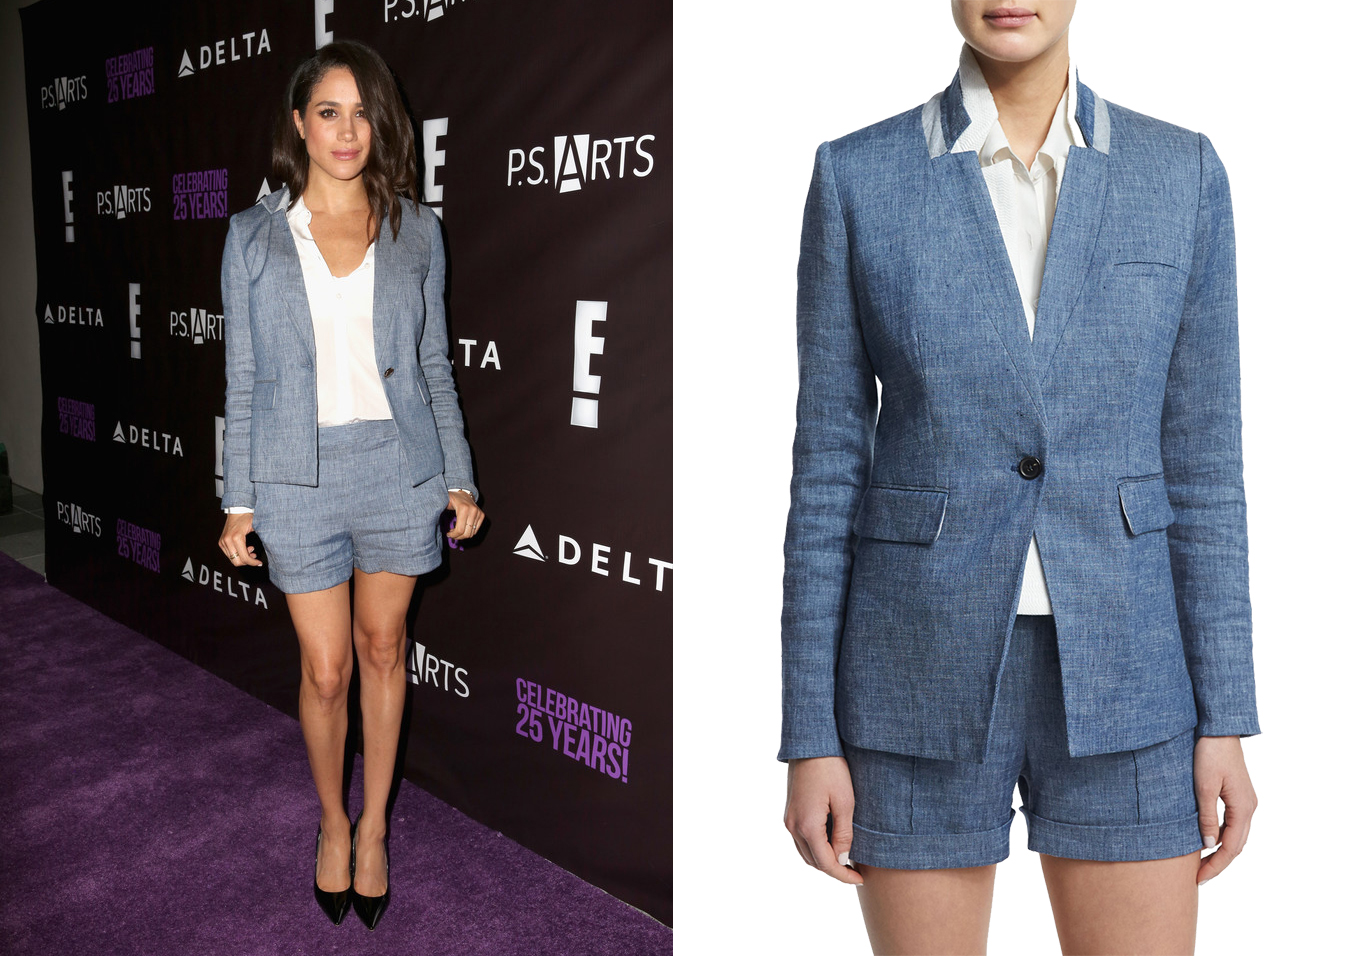 Meghan Markle in Veronica Beard Boca combo romper and blazer at the P.S. Arts The Party in Hollywood on May 20, 2016.